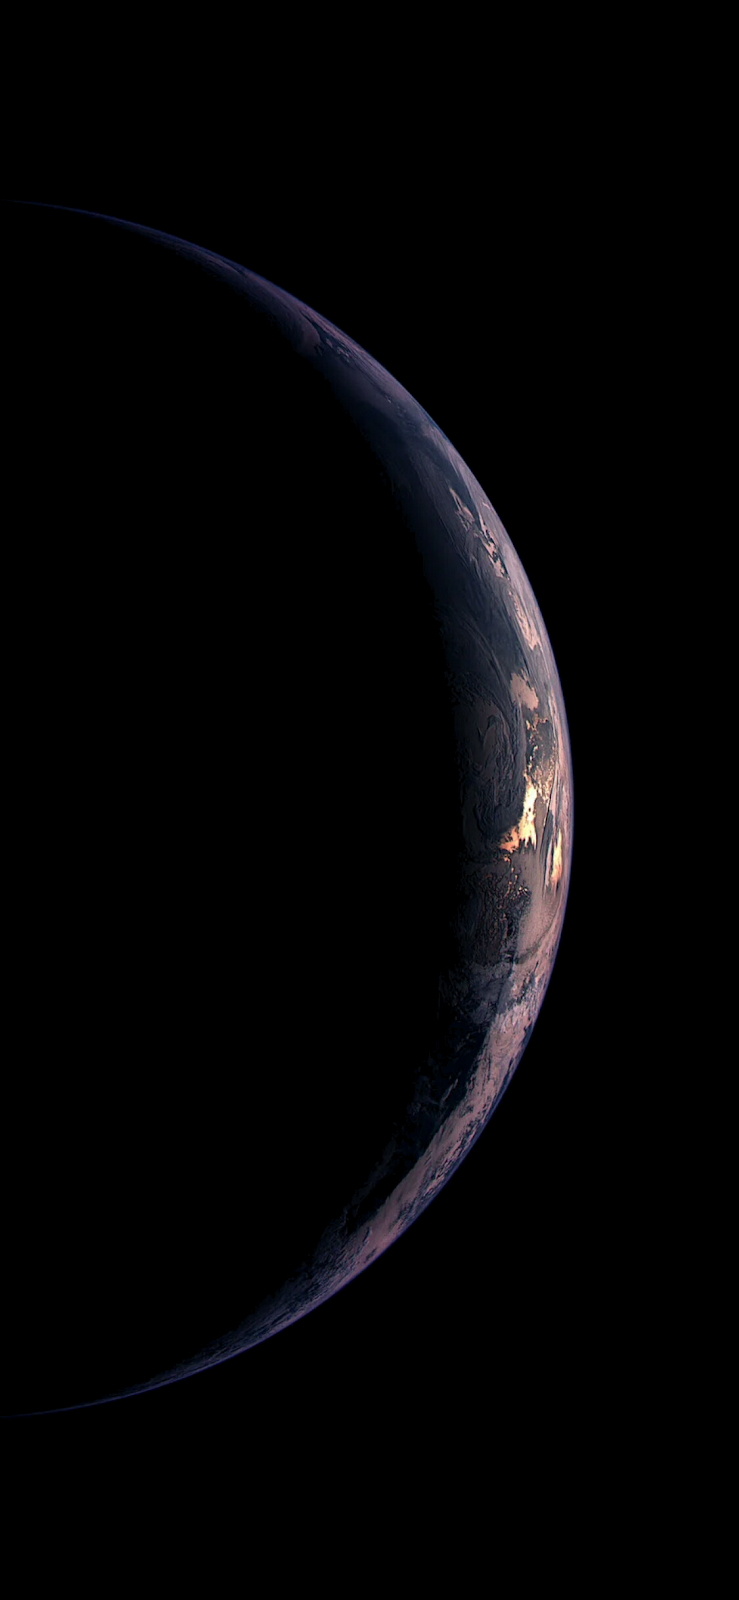 Earth for iPhone X/XS